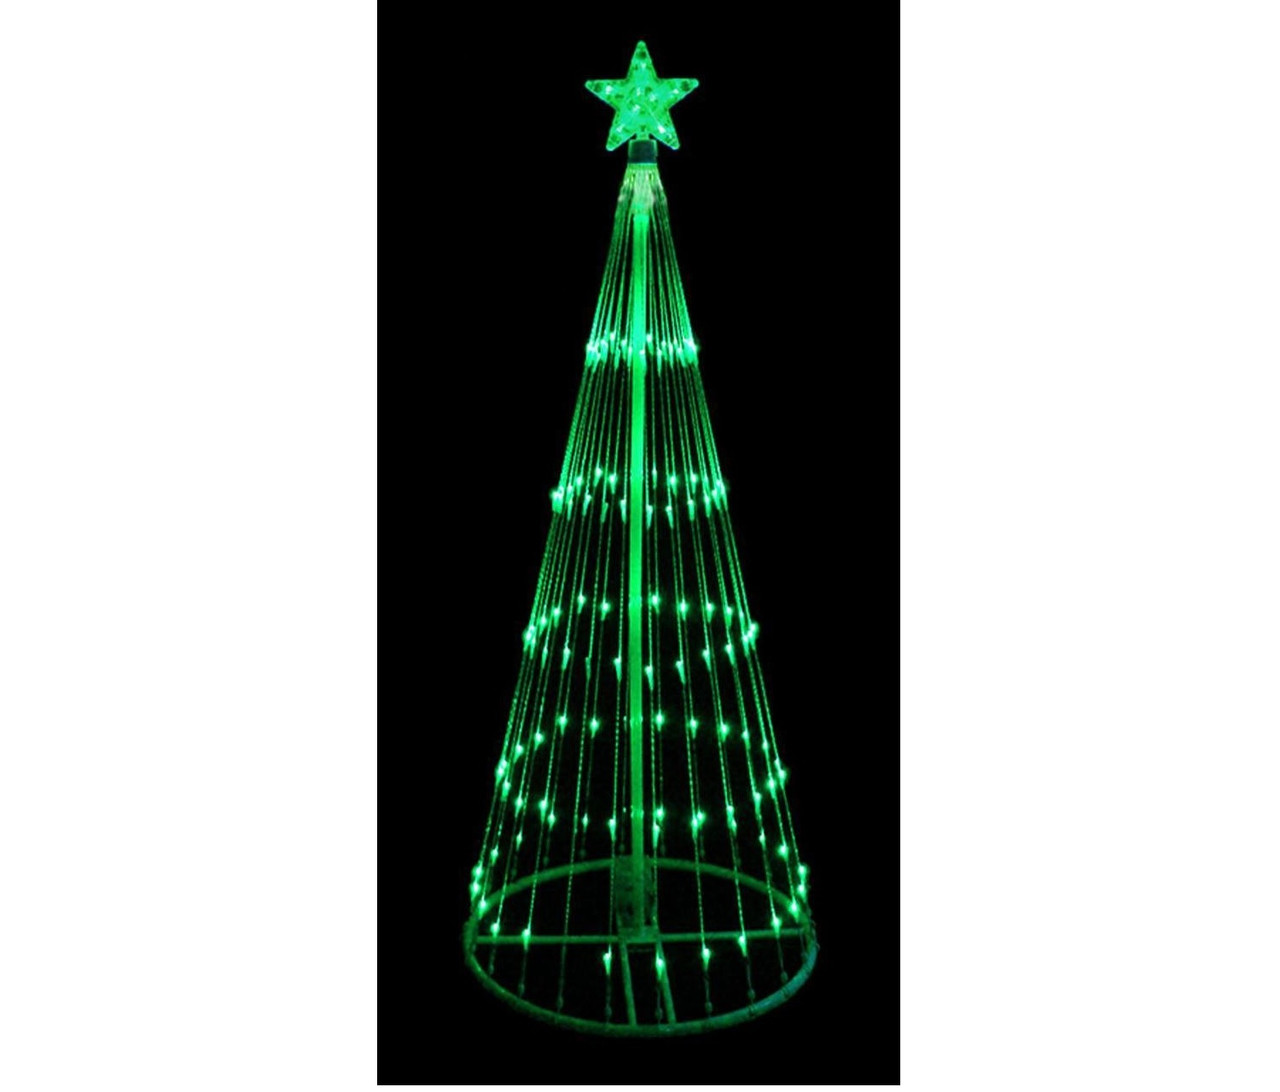 4 green led light show cone christmas tree lighted outdoor decoration 32605113